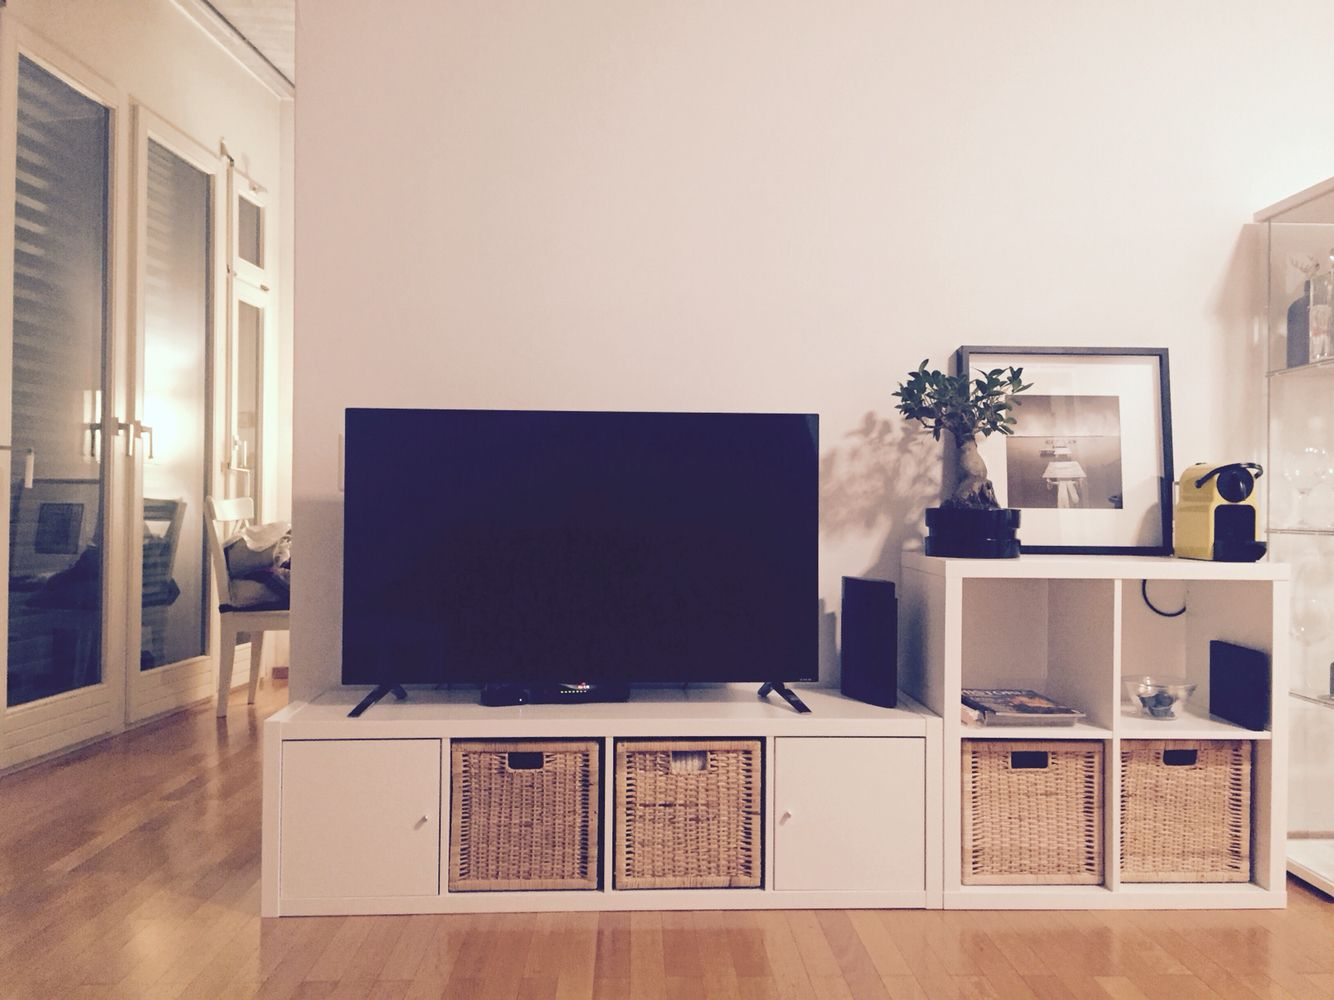 Best Ideas About Ikea Tv On Pinterest Ikea Tv Stand Ikea Tv - Home tv stand furniture designs